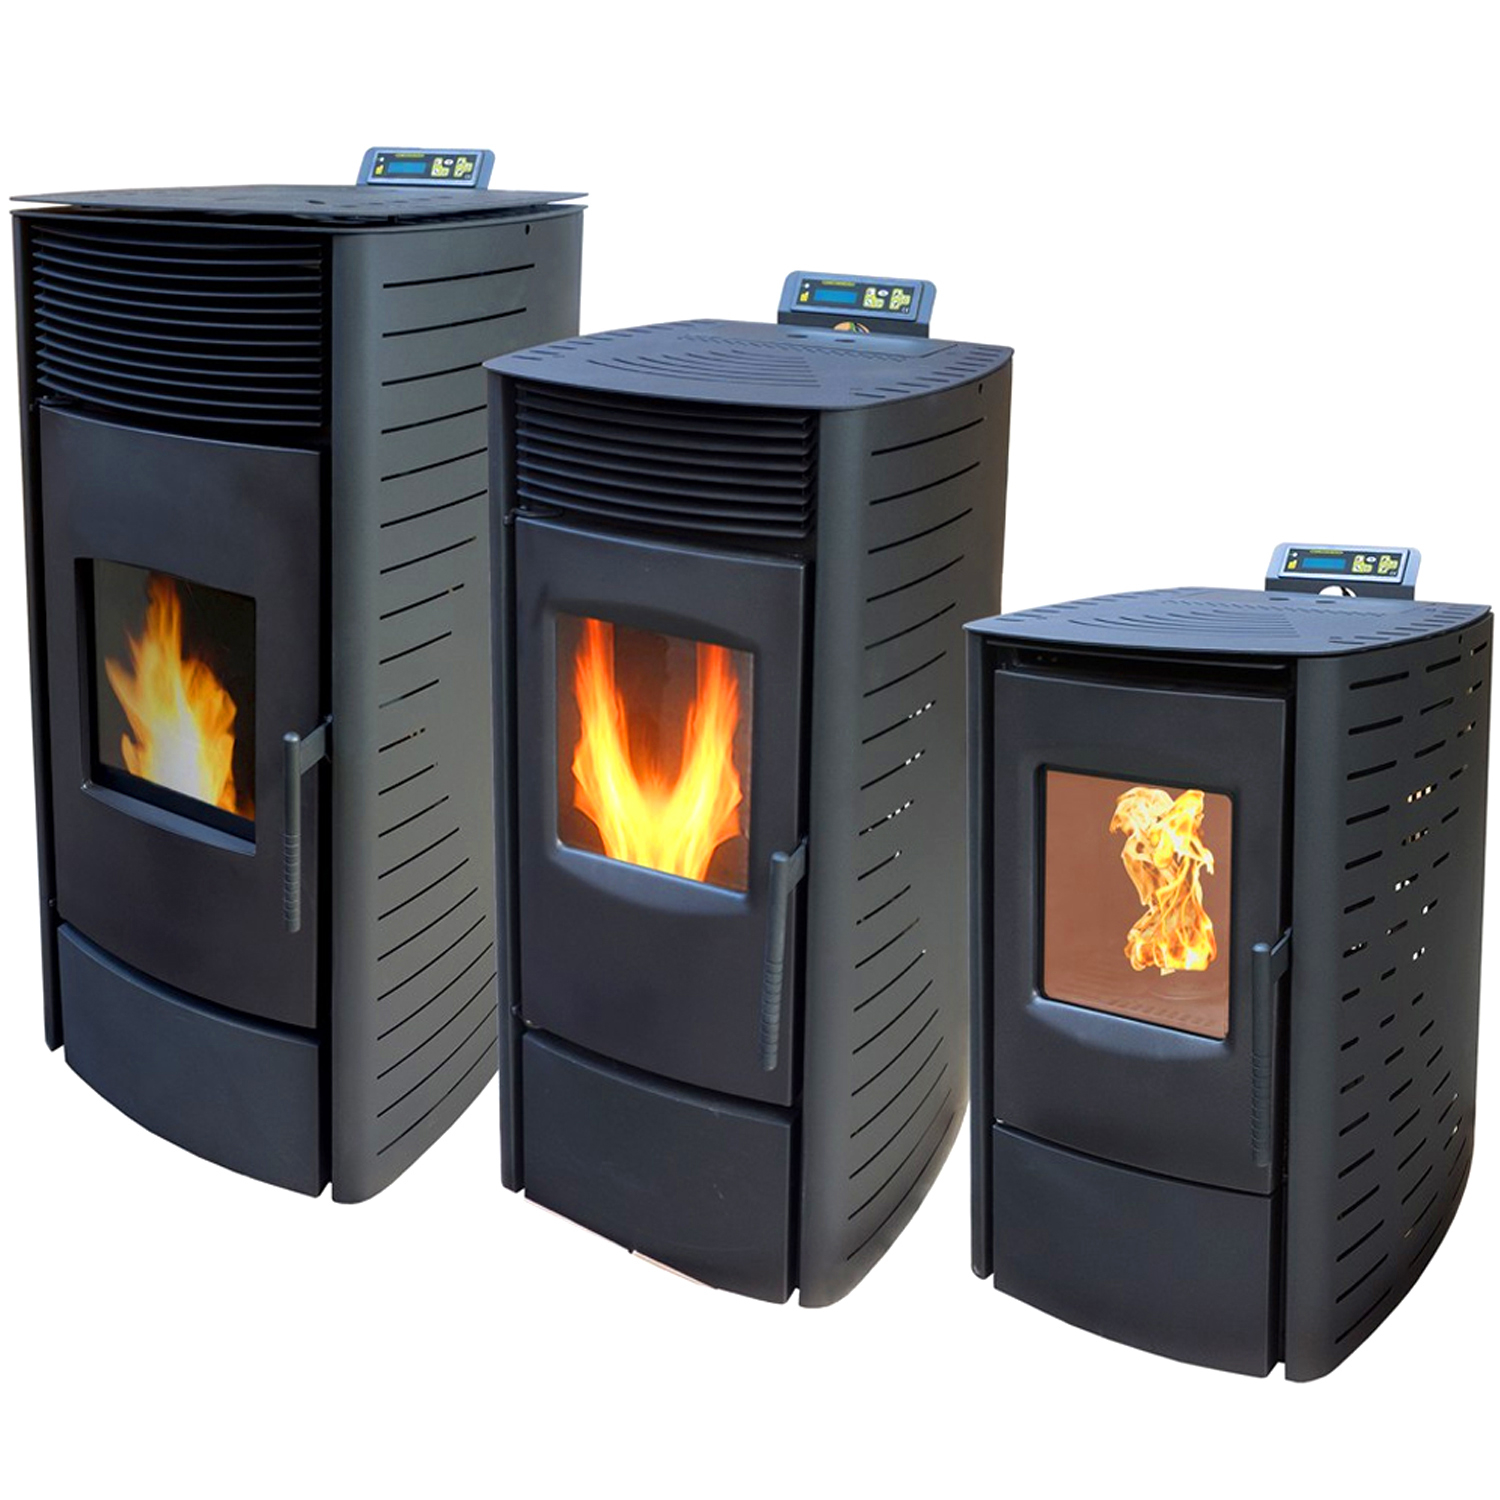 nemaxx pellet stove 3 11 5 kw fire woodburning heating. Black Bedroom Furniture Sets. Home Design Ideas